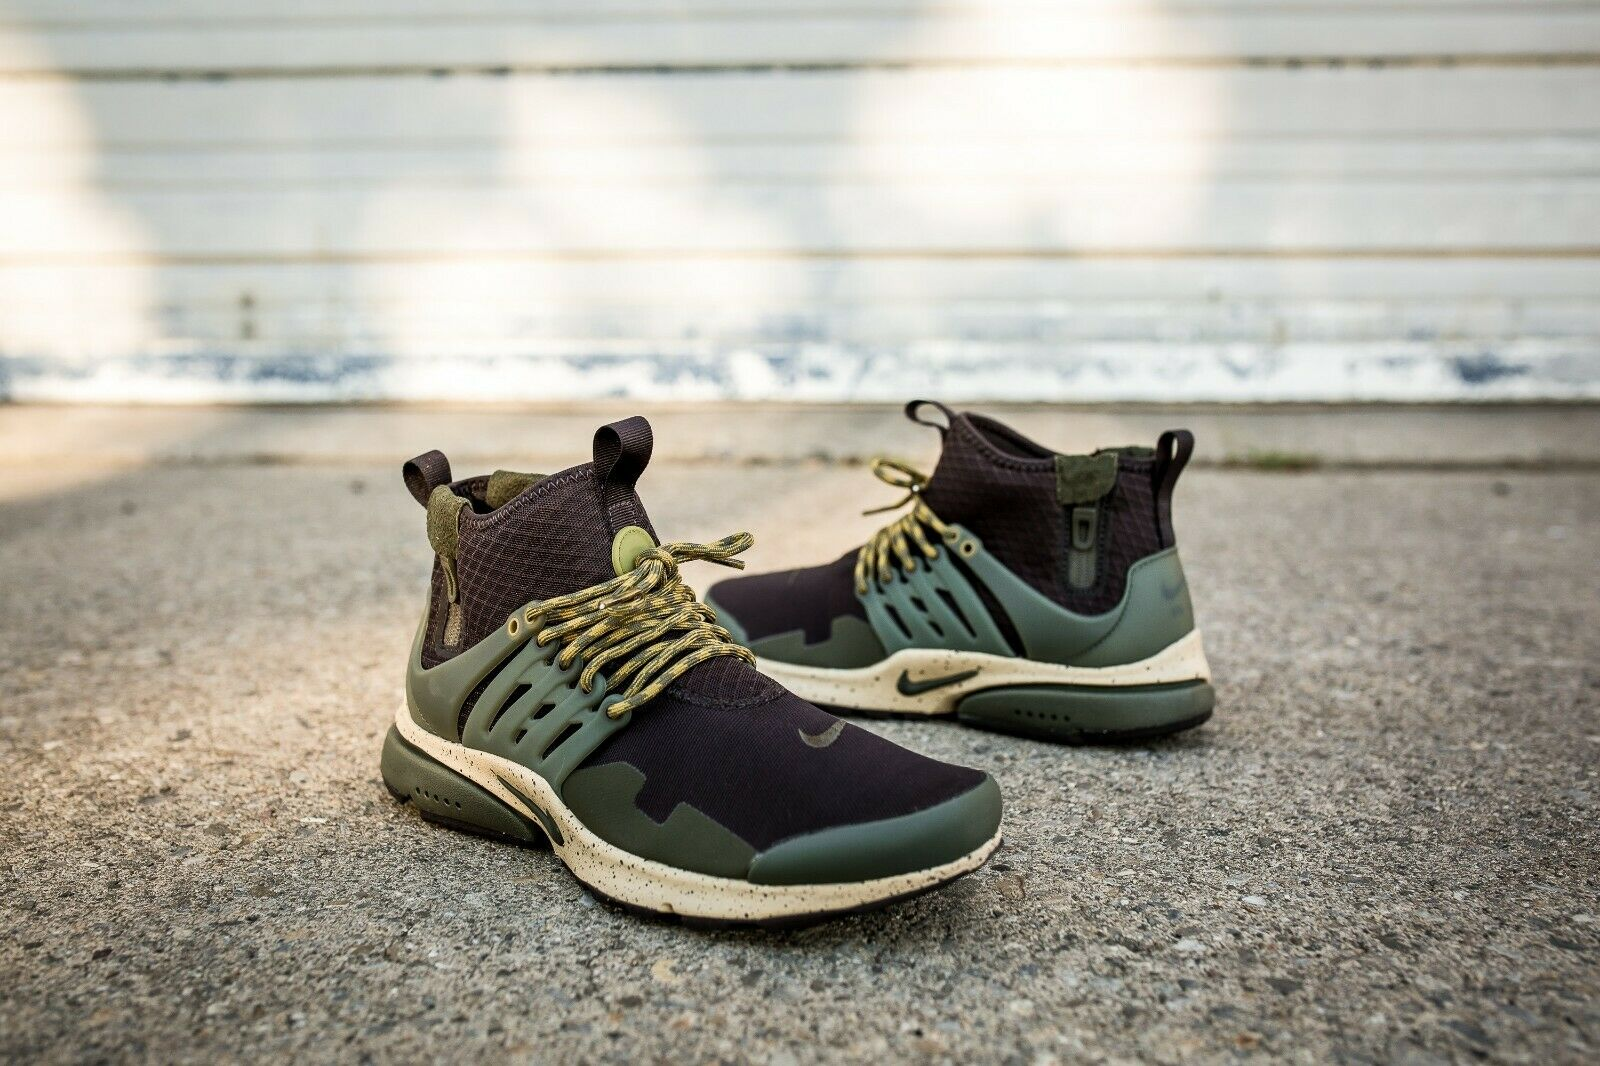 Nike Air Presto Mid Utility Size 8 Velvet Brown Cargo Khaki Men shoes 859524-200